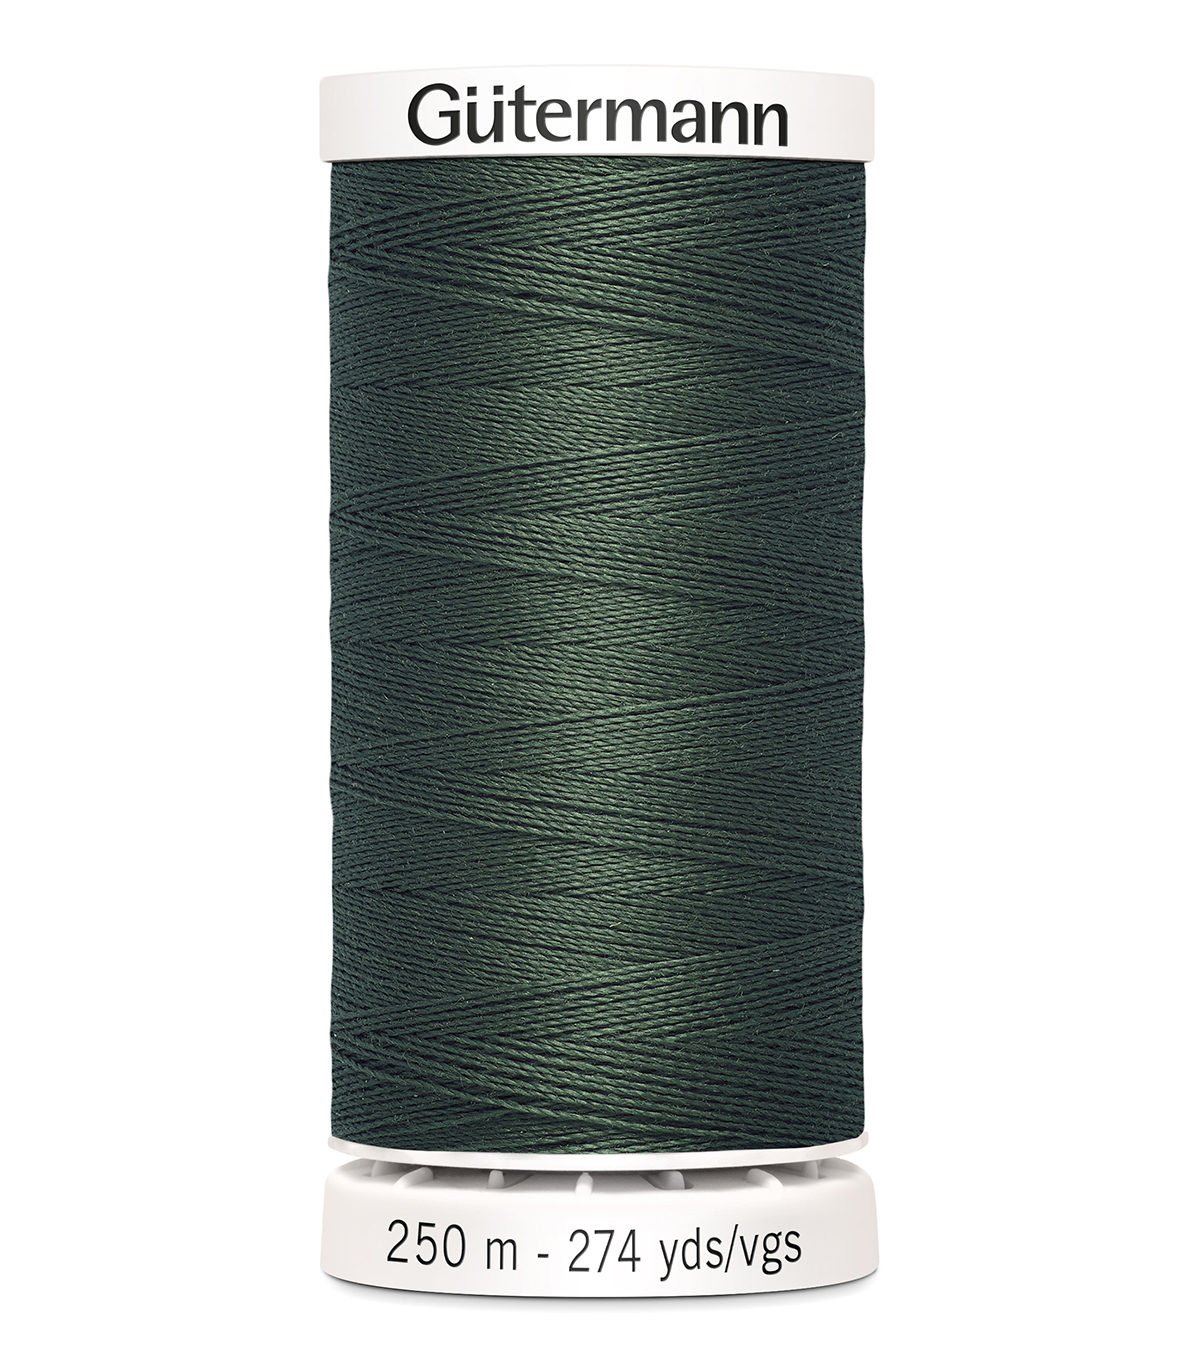 Gutermann Sew-All Thread 273Yds-(600 & 700 series) Cool Tones , Khaki Green #766